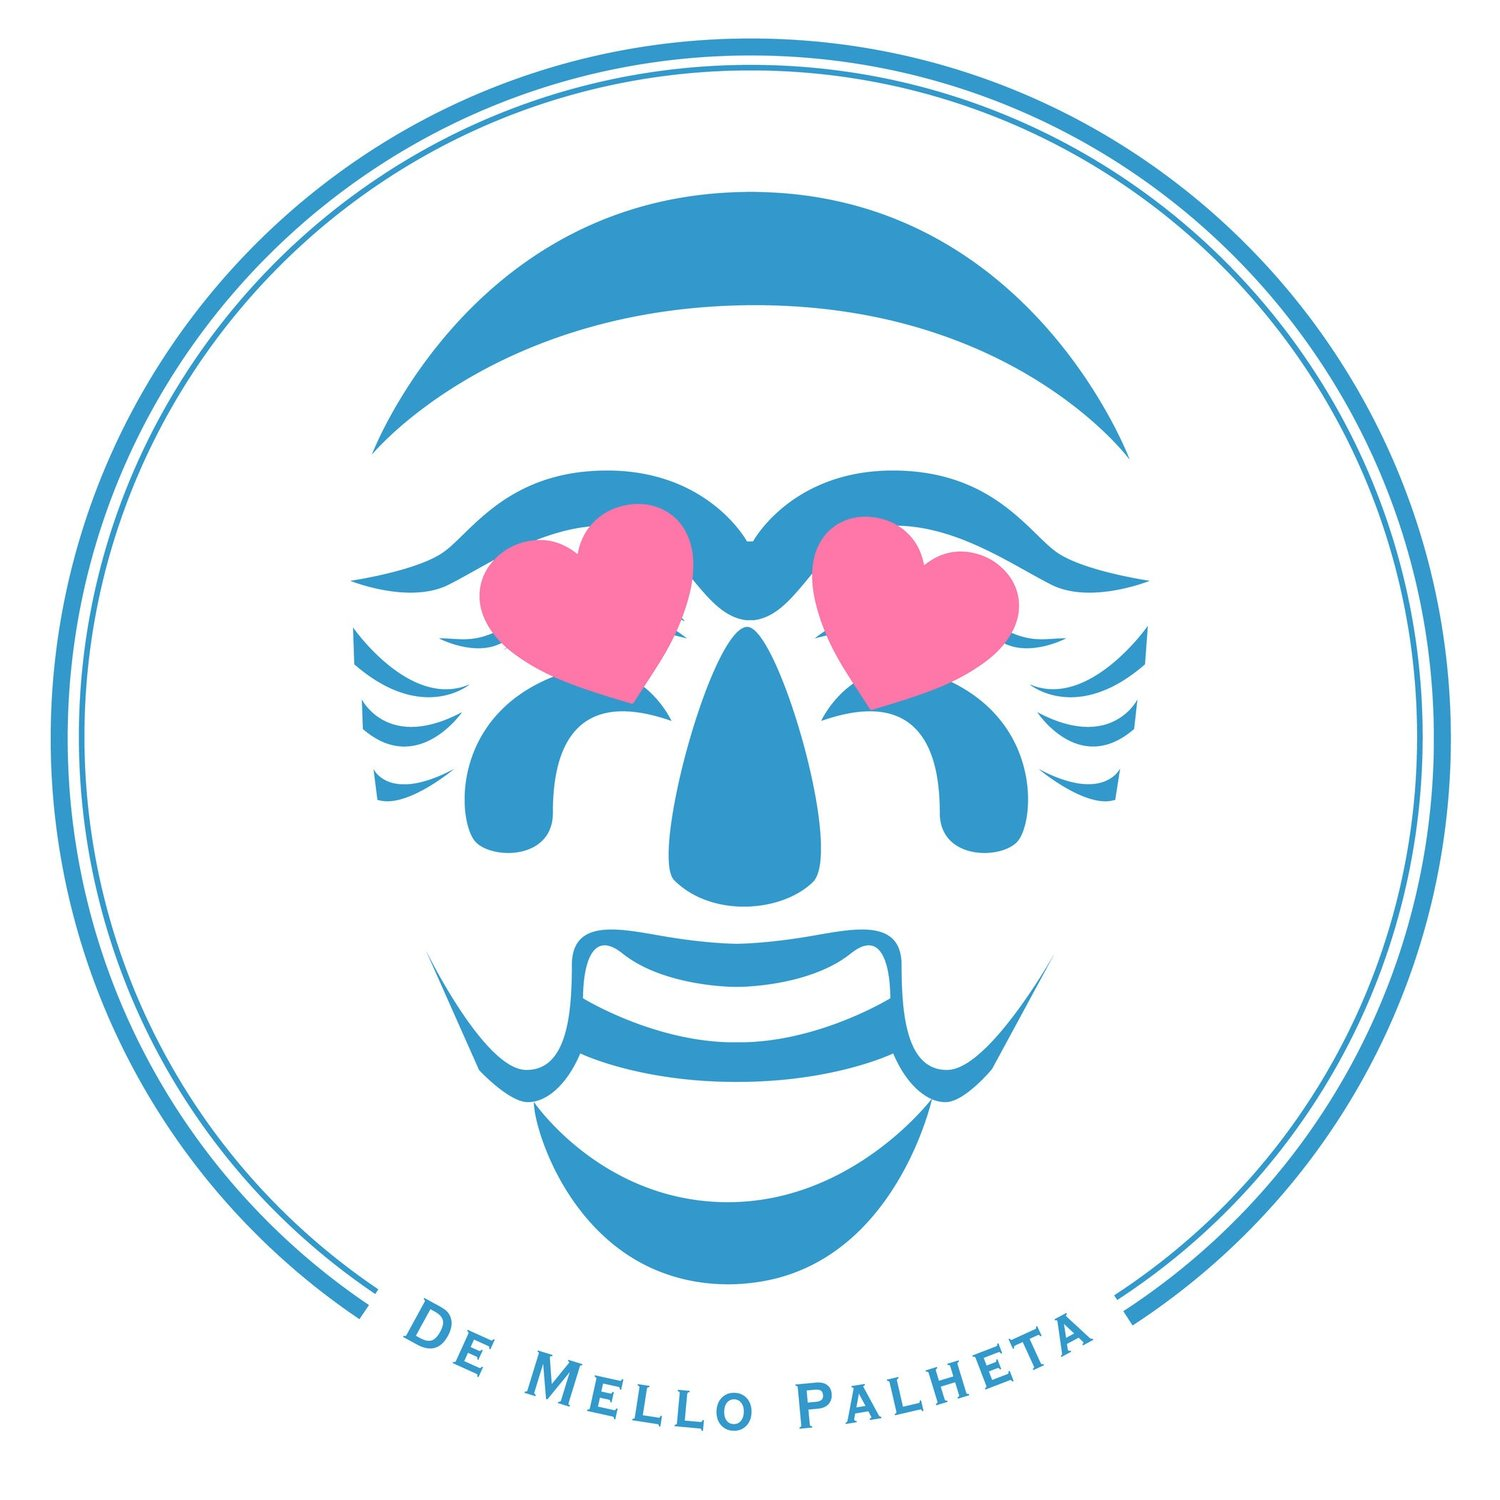 De Mello Palheta Coffee Roasters